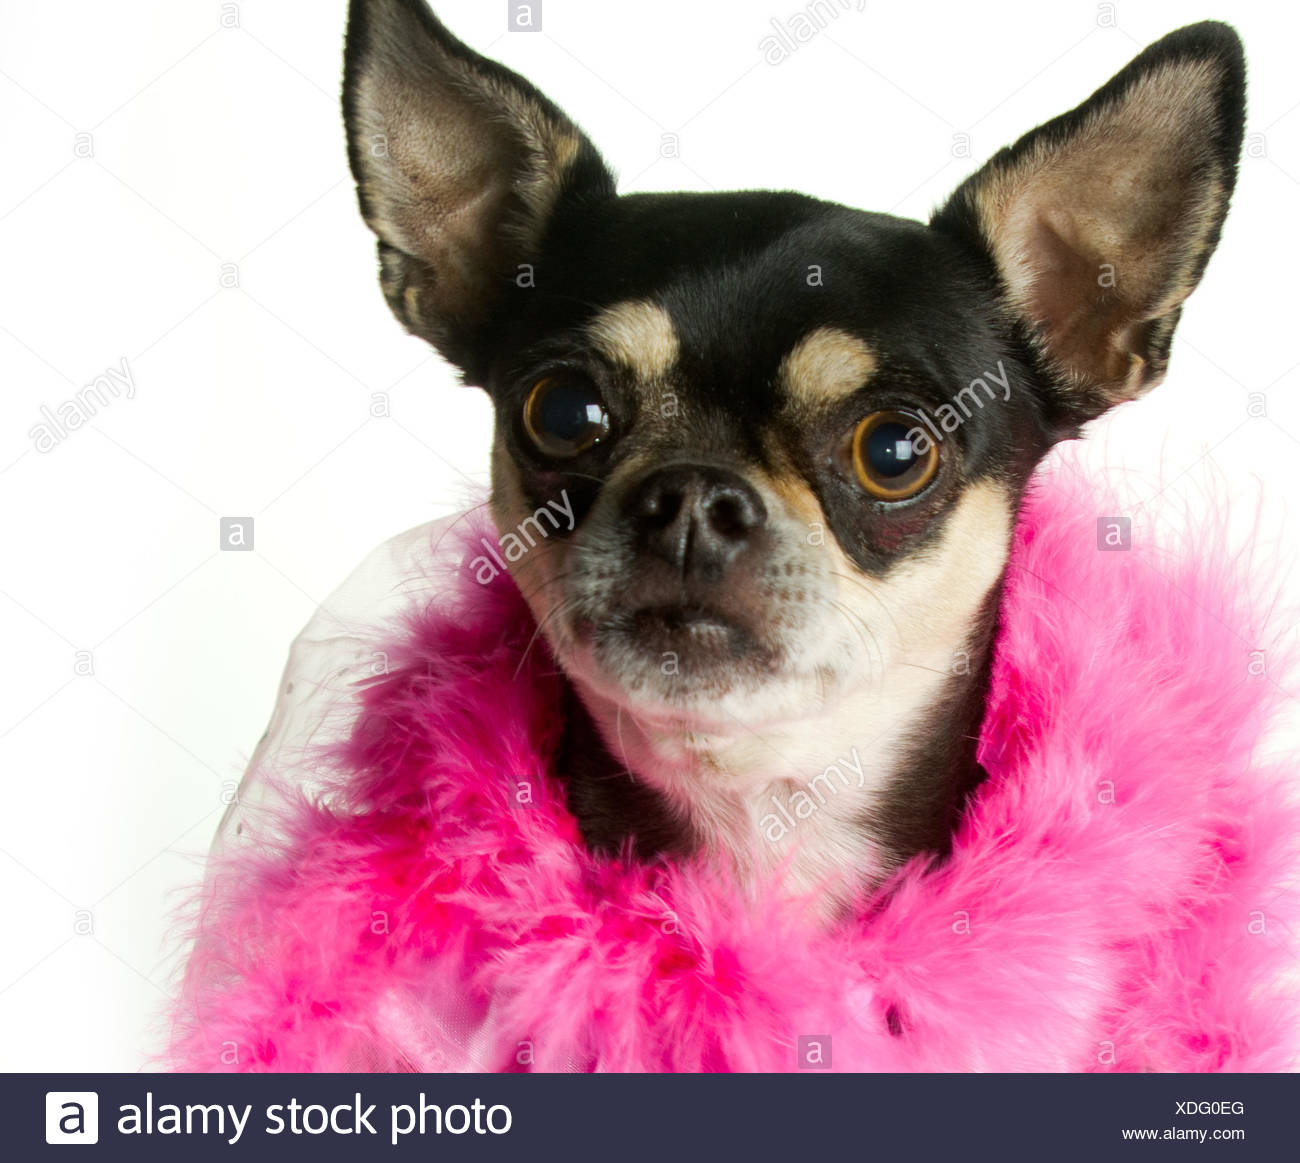 Dog Dogs Feathers Puppy Chihuahua Chihuahuas Cute Dog Doggy